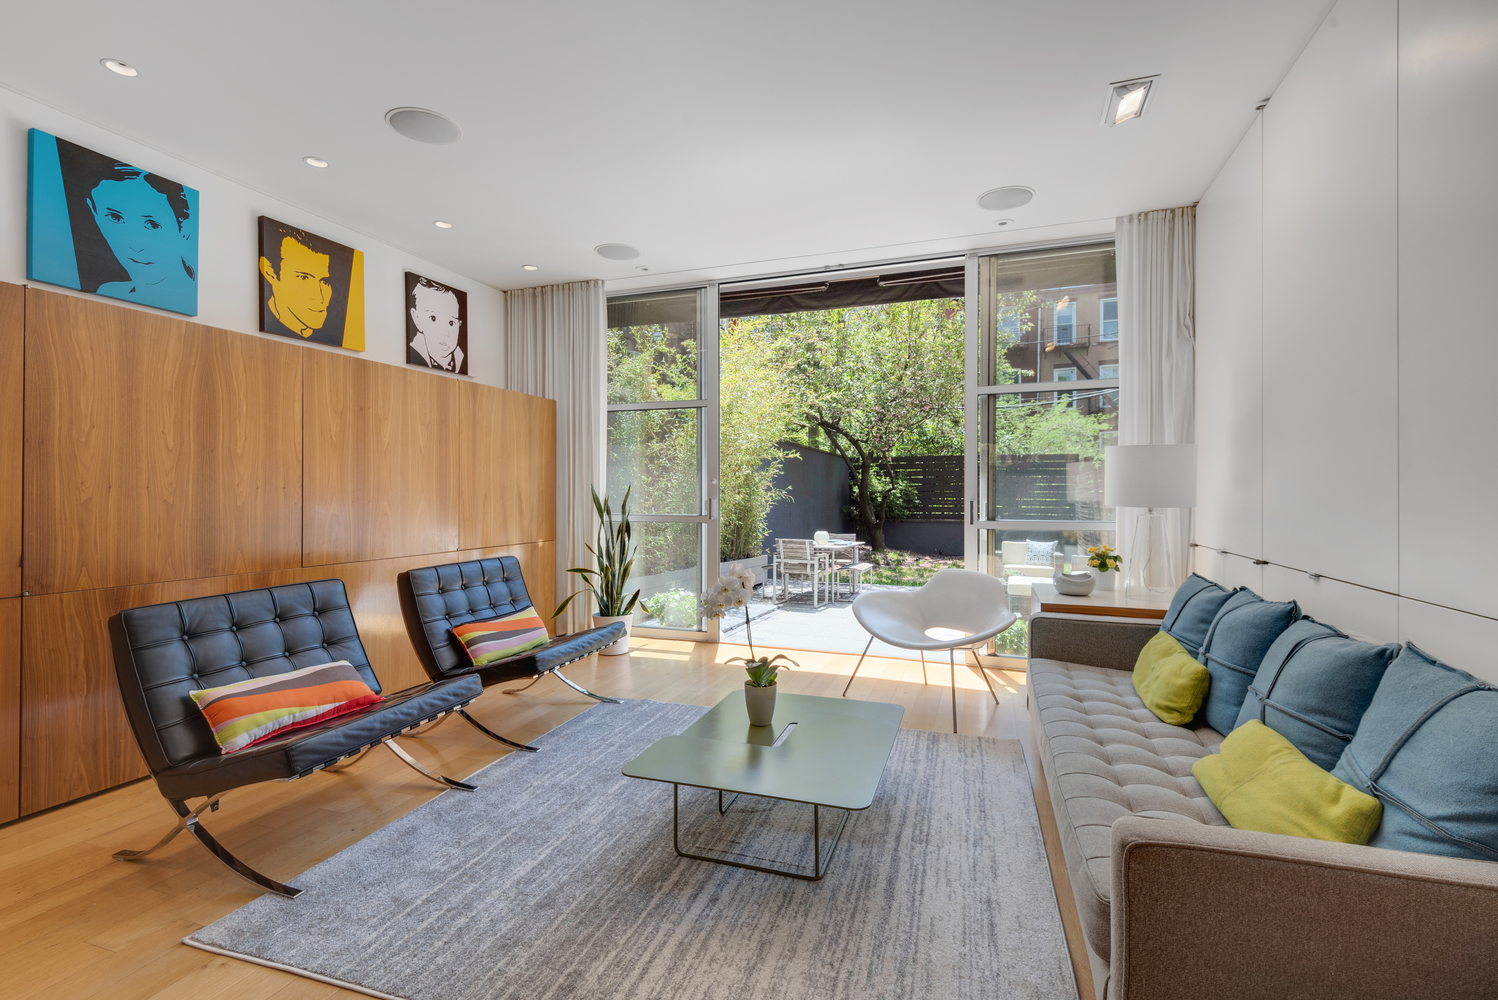 Tour A Newly Listed Townhouse Combining California Mid-Century Modernism With Classic Park Slope  Charm Asking $3.65 Million